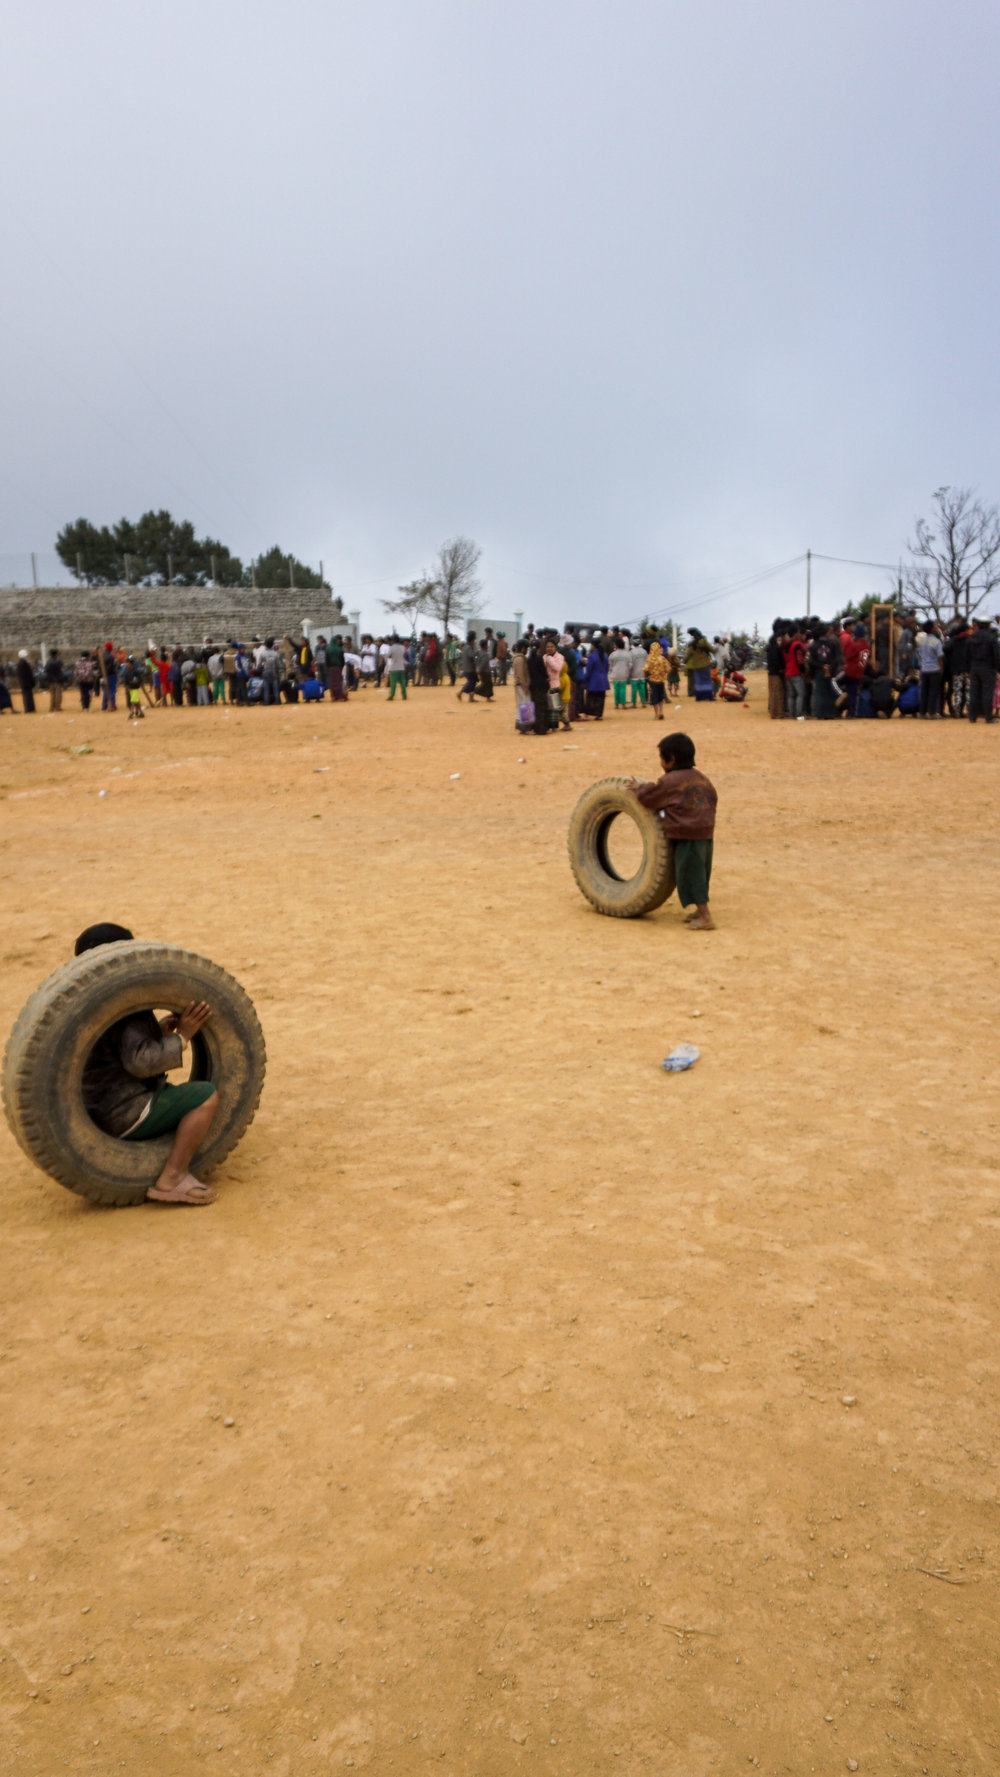 Tyre races at a local sports day to celebrate Independence Day in Mindat.